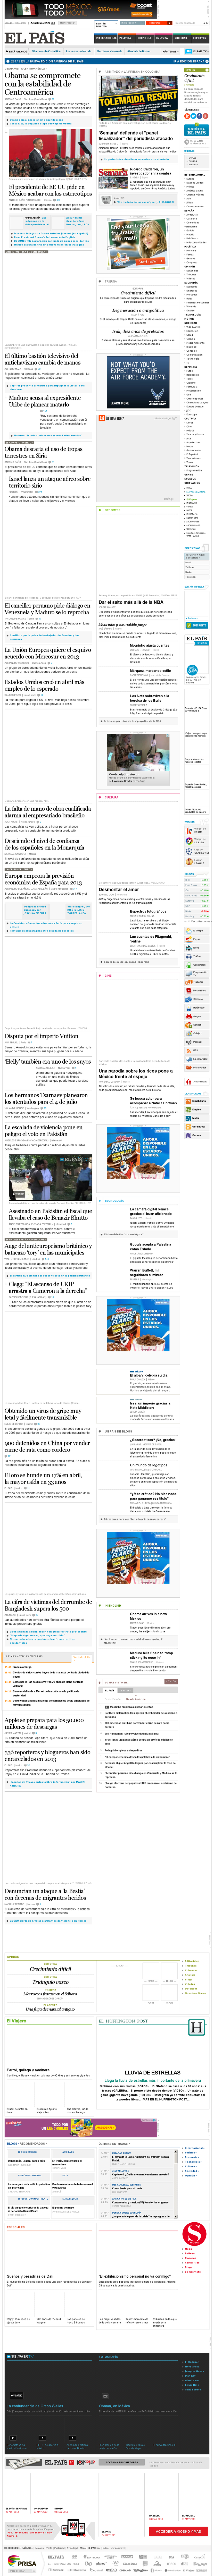 El Pais at Saturday May 4, 2013, 1:22 p.m. UTC